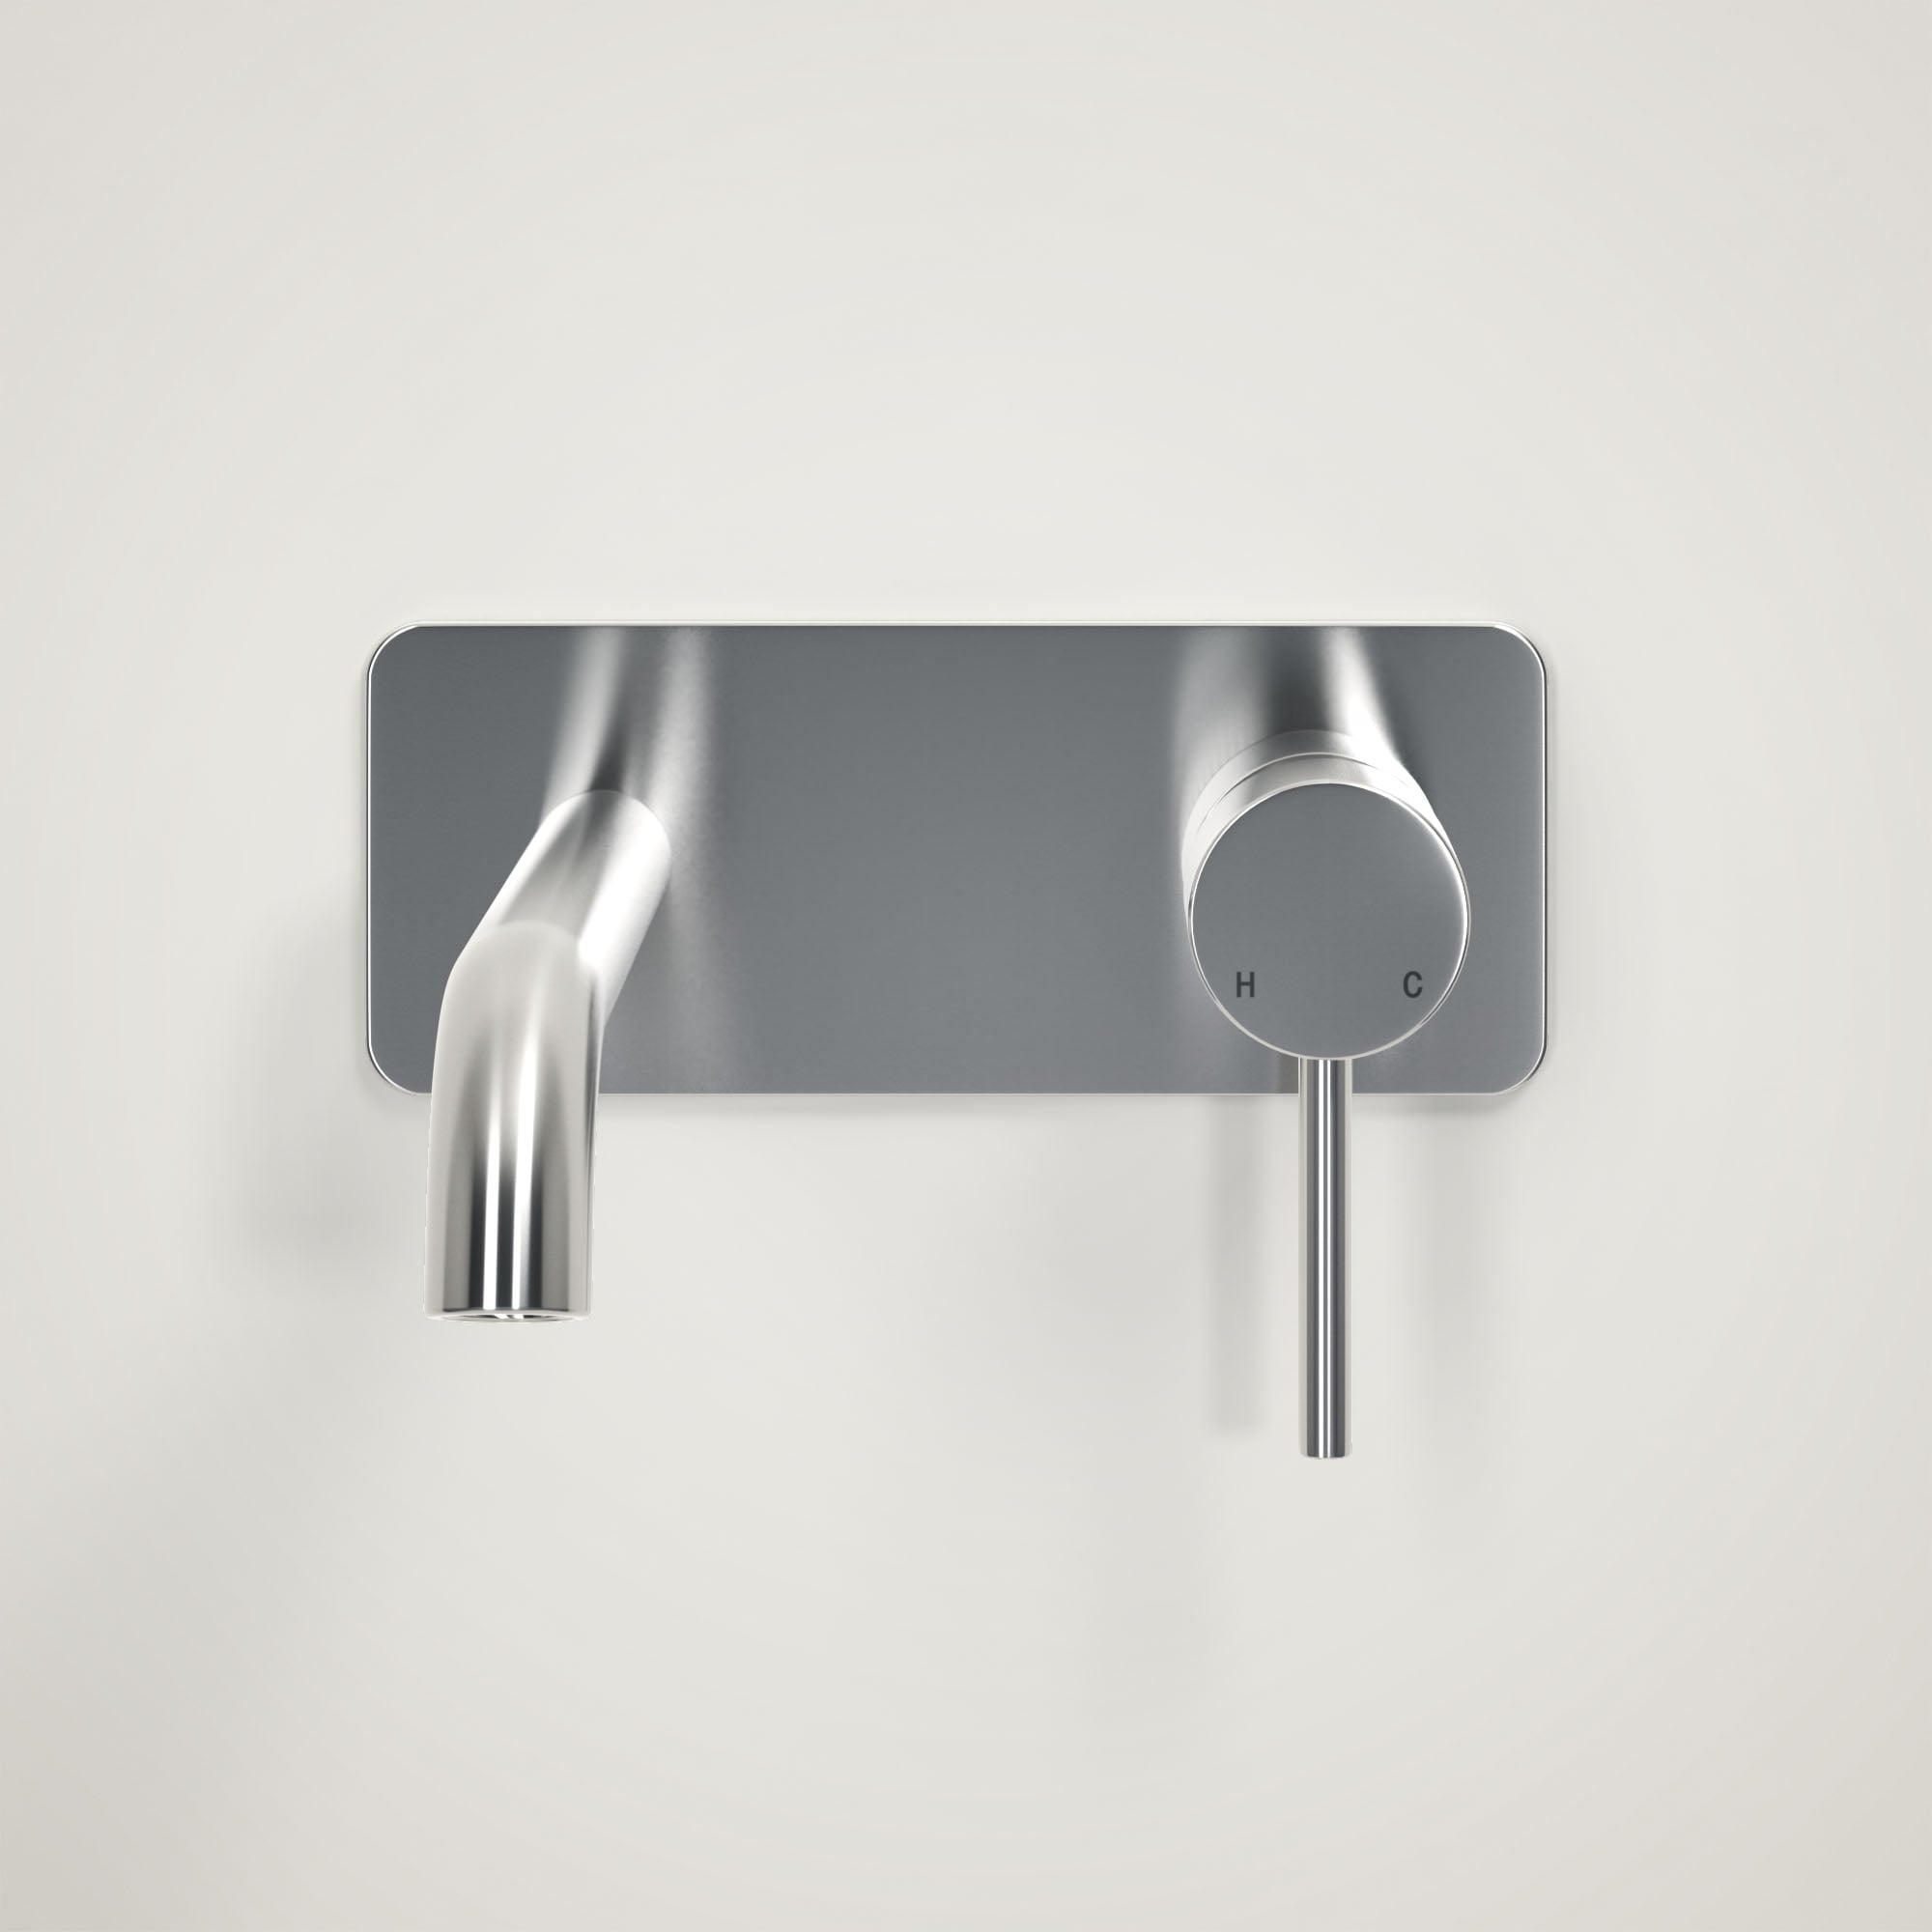 Lusso Luxe Wall Mounted Basin Mixer Tap Brushed Stainless